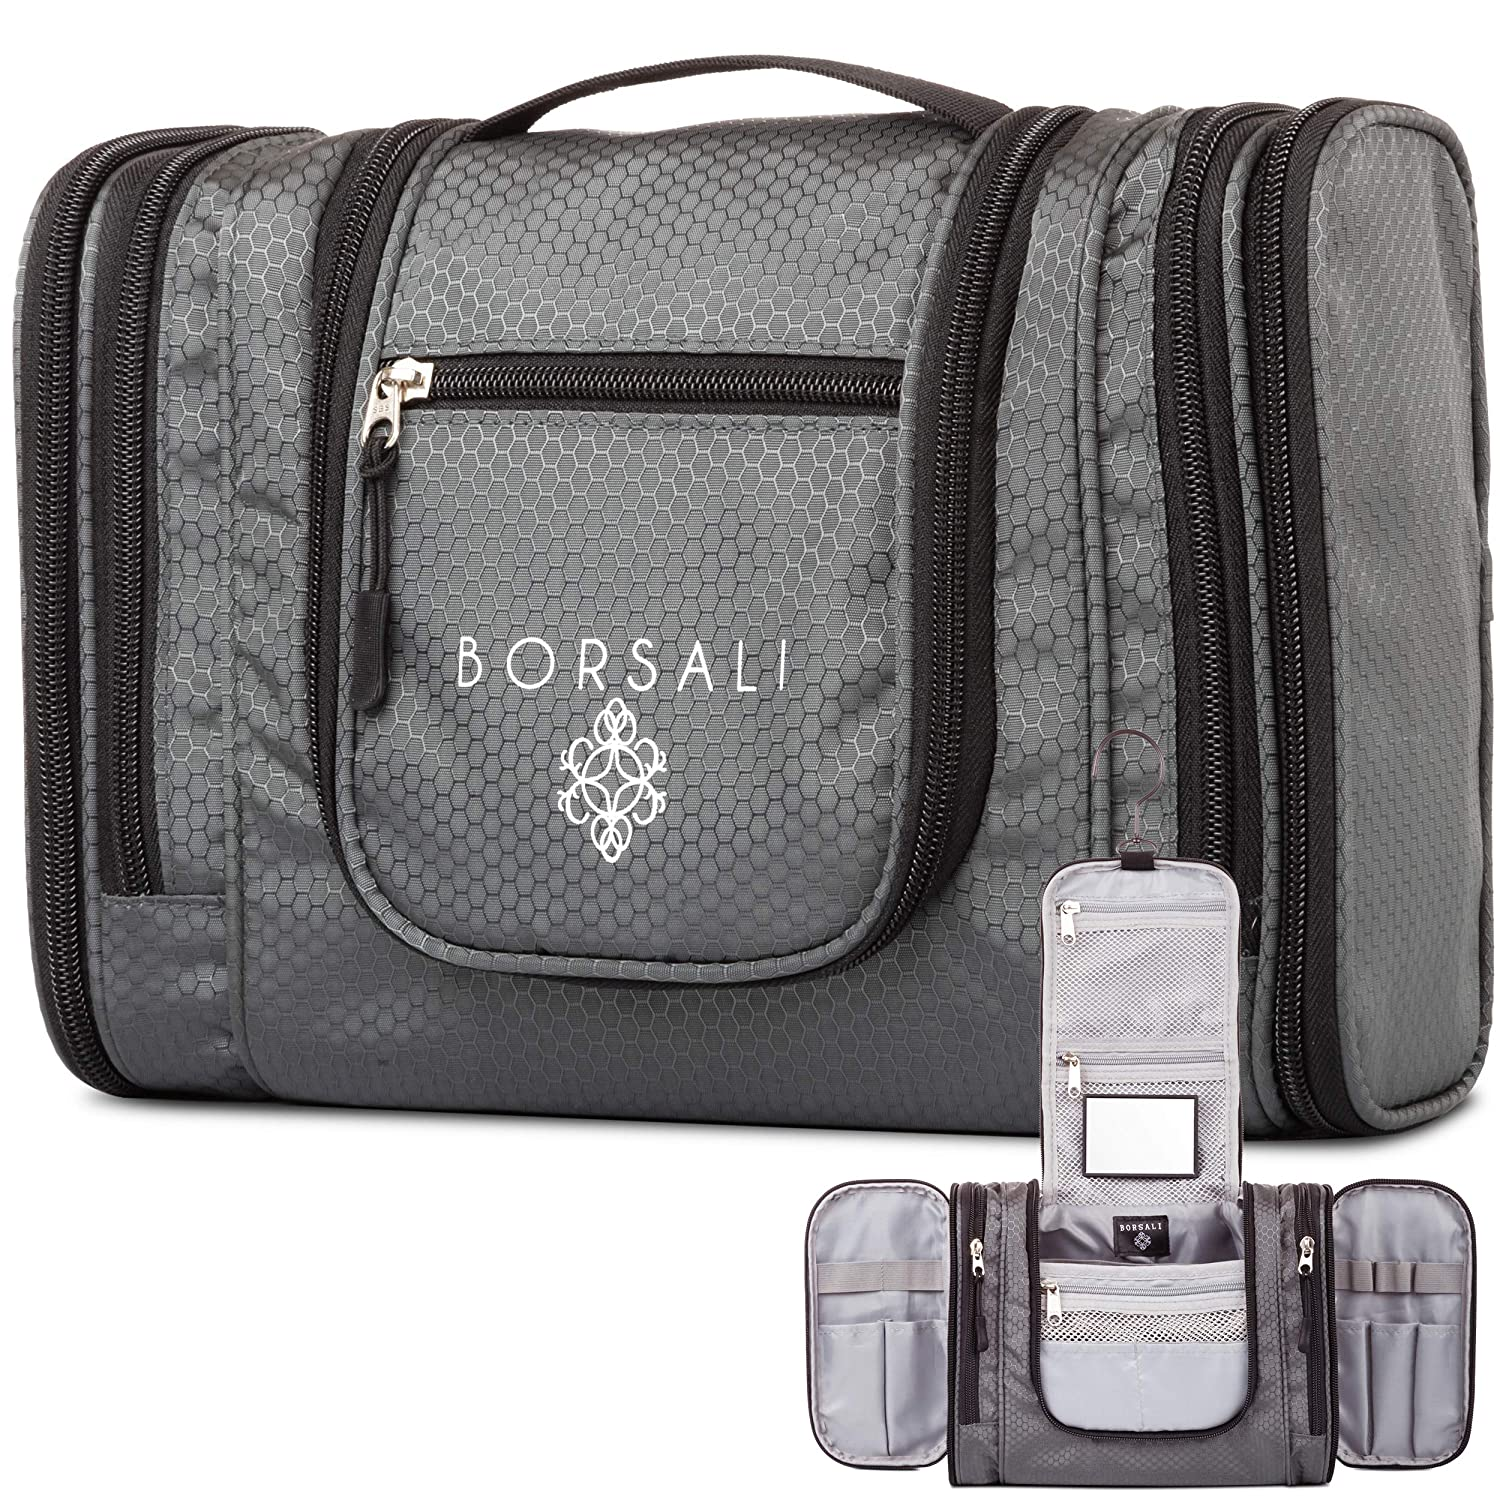 Hanging Toiletry Bag for Women Men by Borsali – Makeup and Toiletries Travel Organizer- Medium Bag – Compact Yet Roomy -Travel Confidently with Mirror – Large Back Pocket – Easy Access Compartments